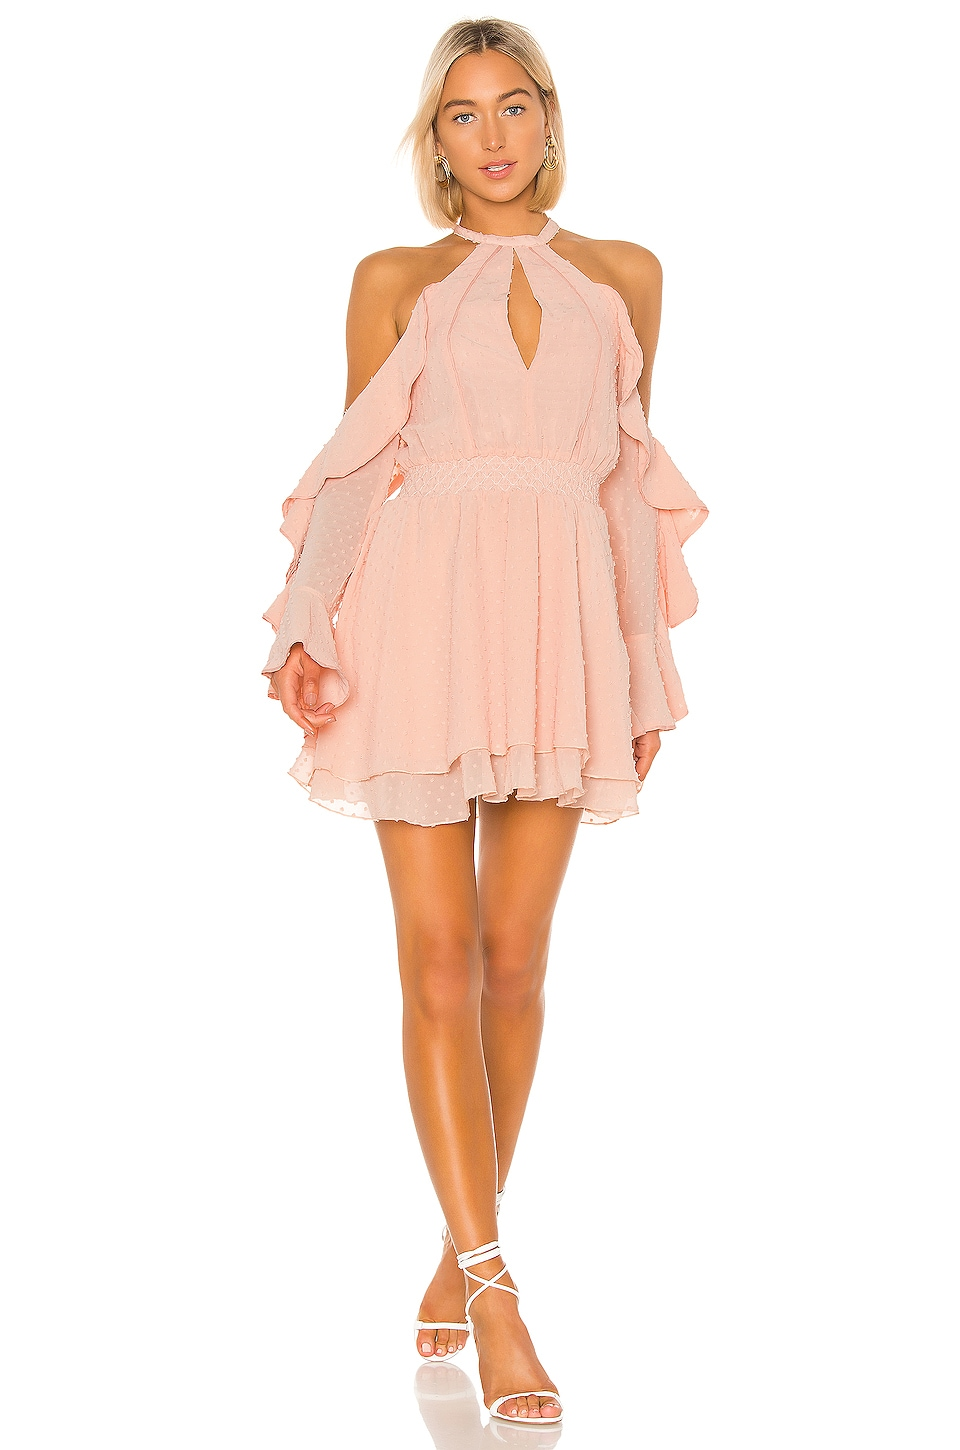 House of Harlow 1960 X REVOLVE Harmony Dress in Blush